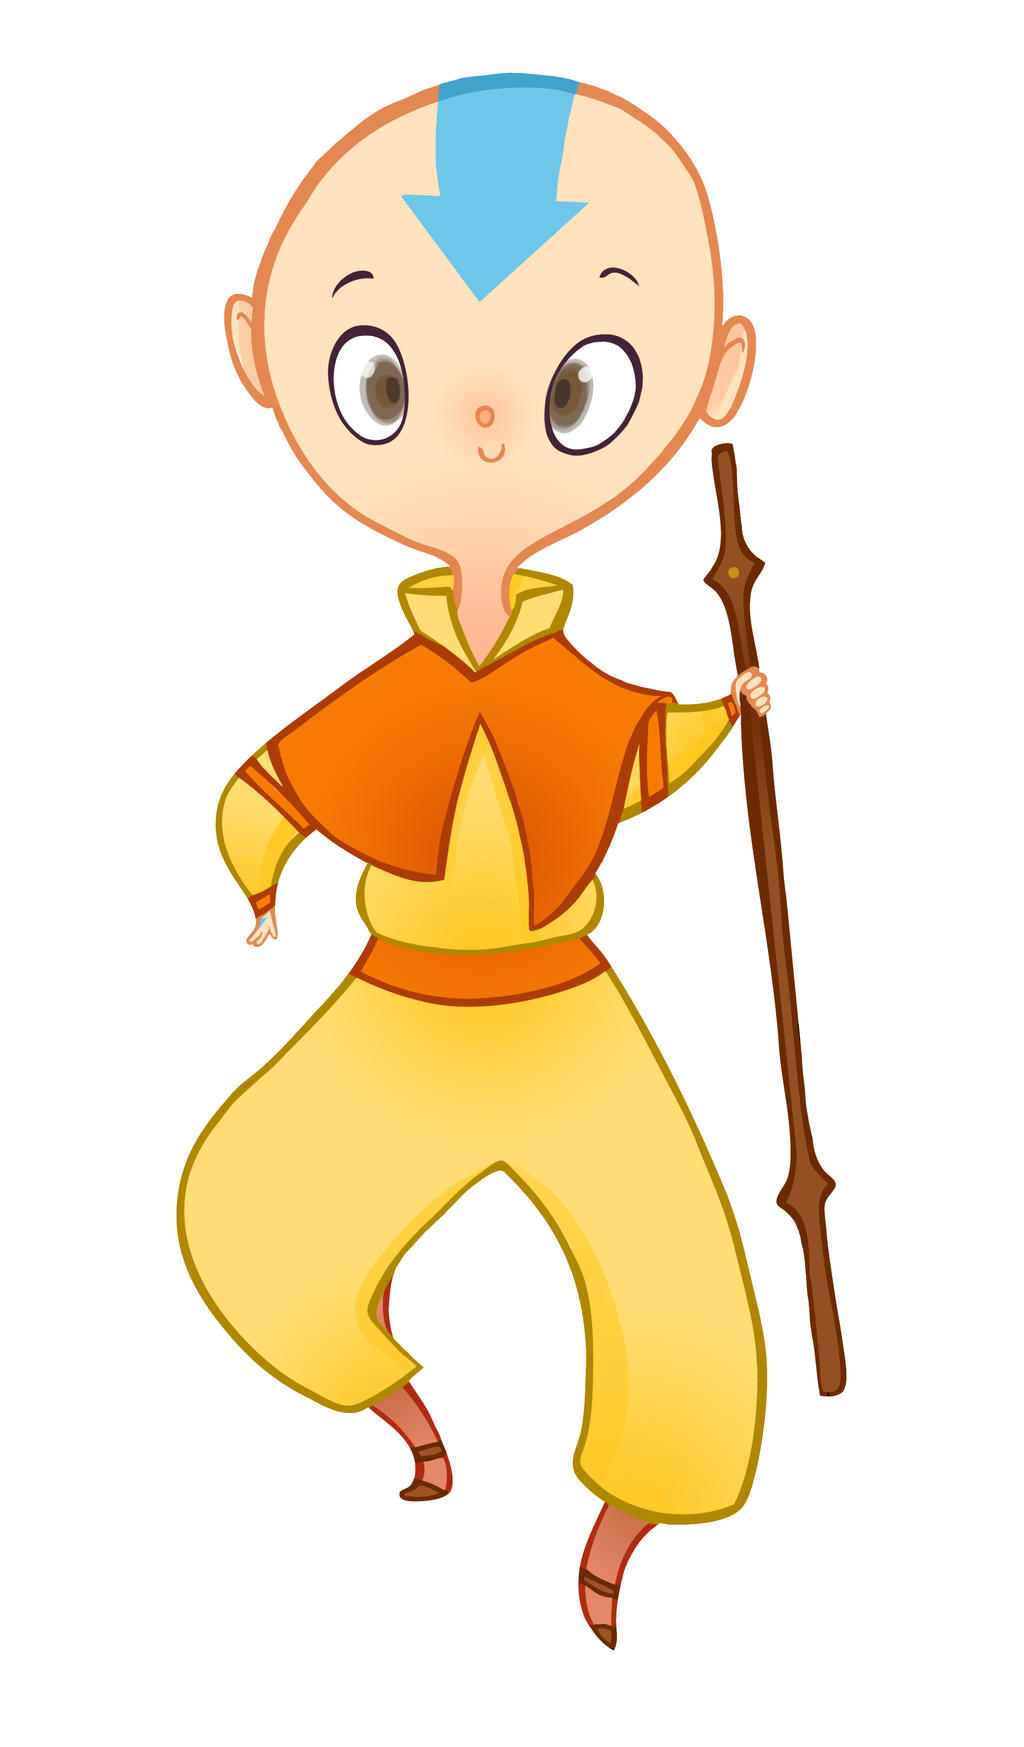 Aang the Airbender by spicysteweddemon